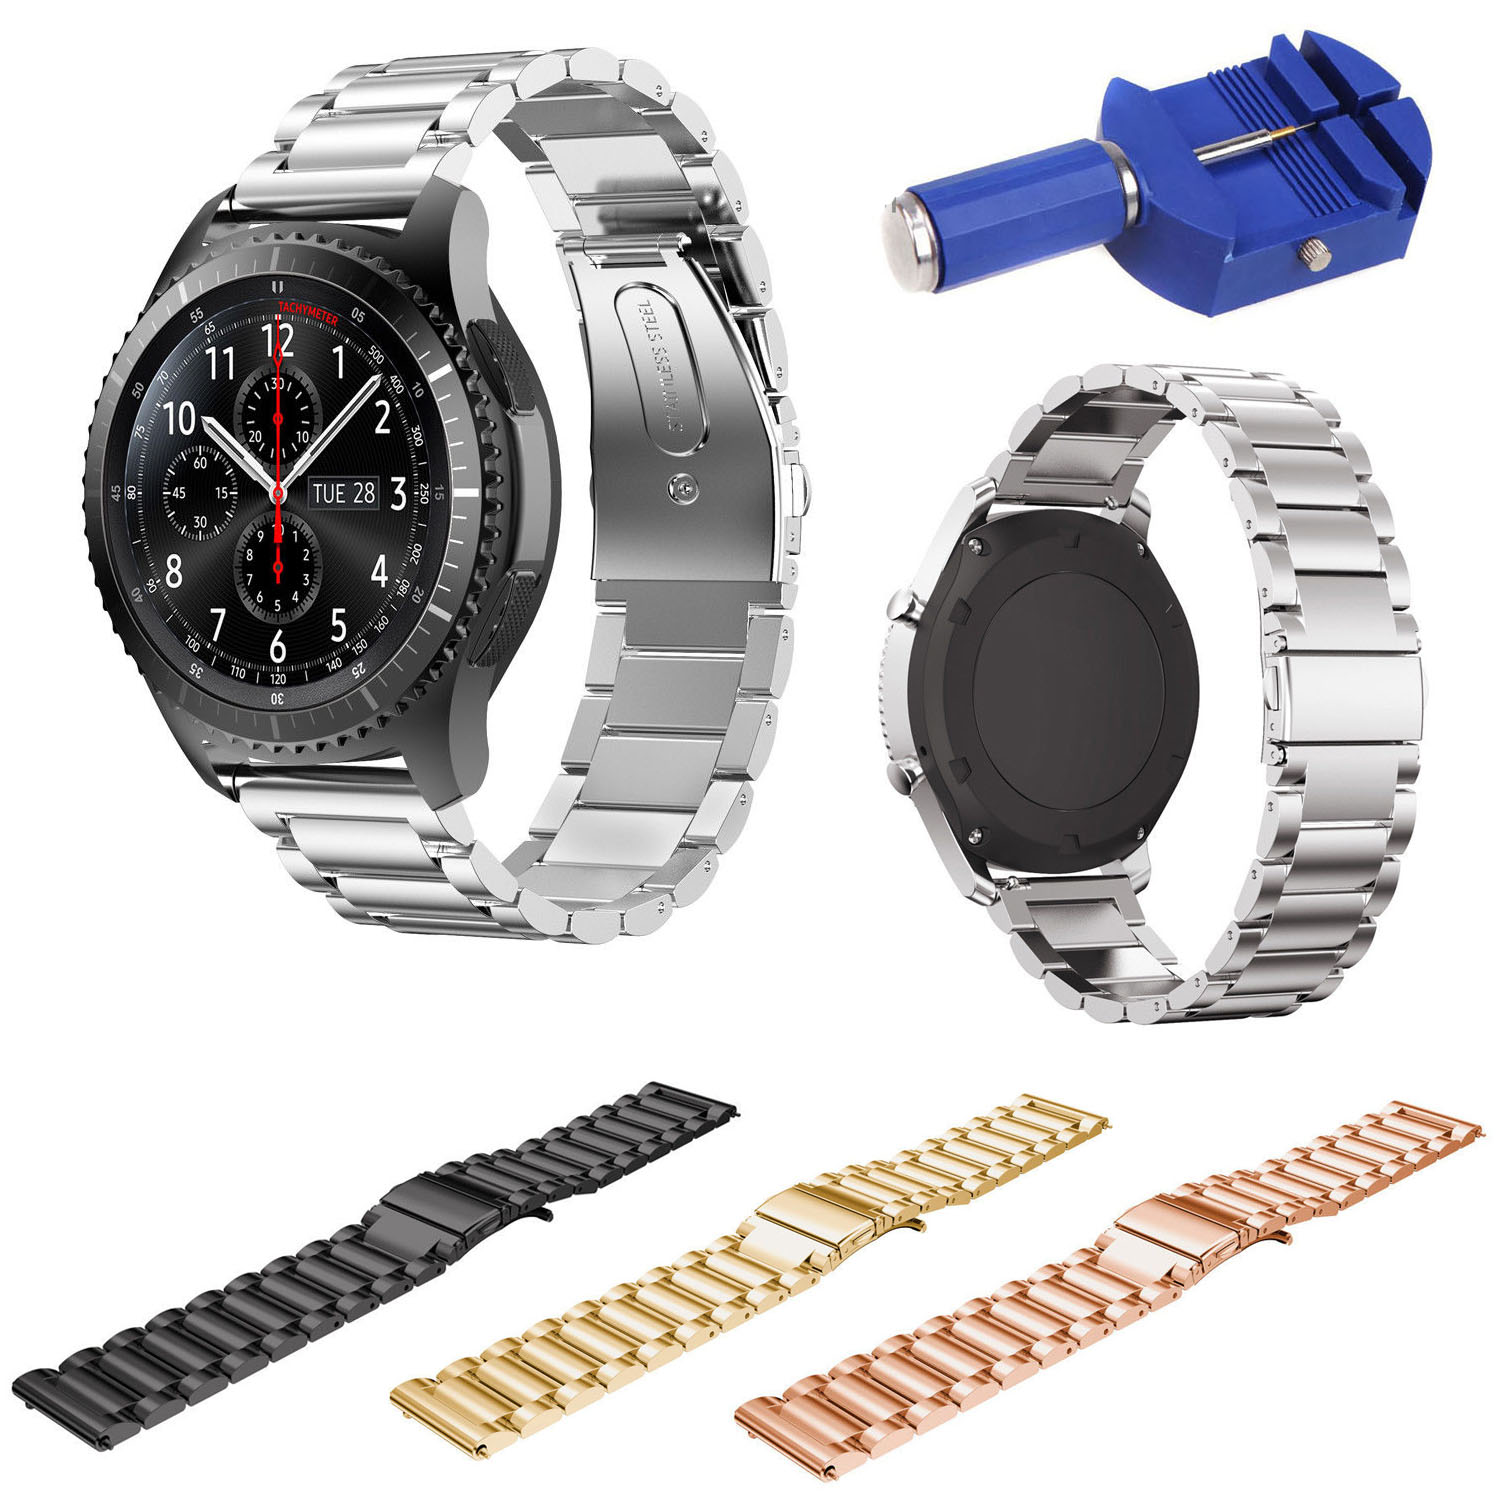 For Samsung Gear S3 Smart Watch Metal Strap 3 Beads Stainless Steel Band For S3 Frontier S3 Classic Bracelet With Pins & Tool crested sport silicone strap for samsung gear s3 classic frontier replacement rubber band watch strap for samsung gear s3